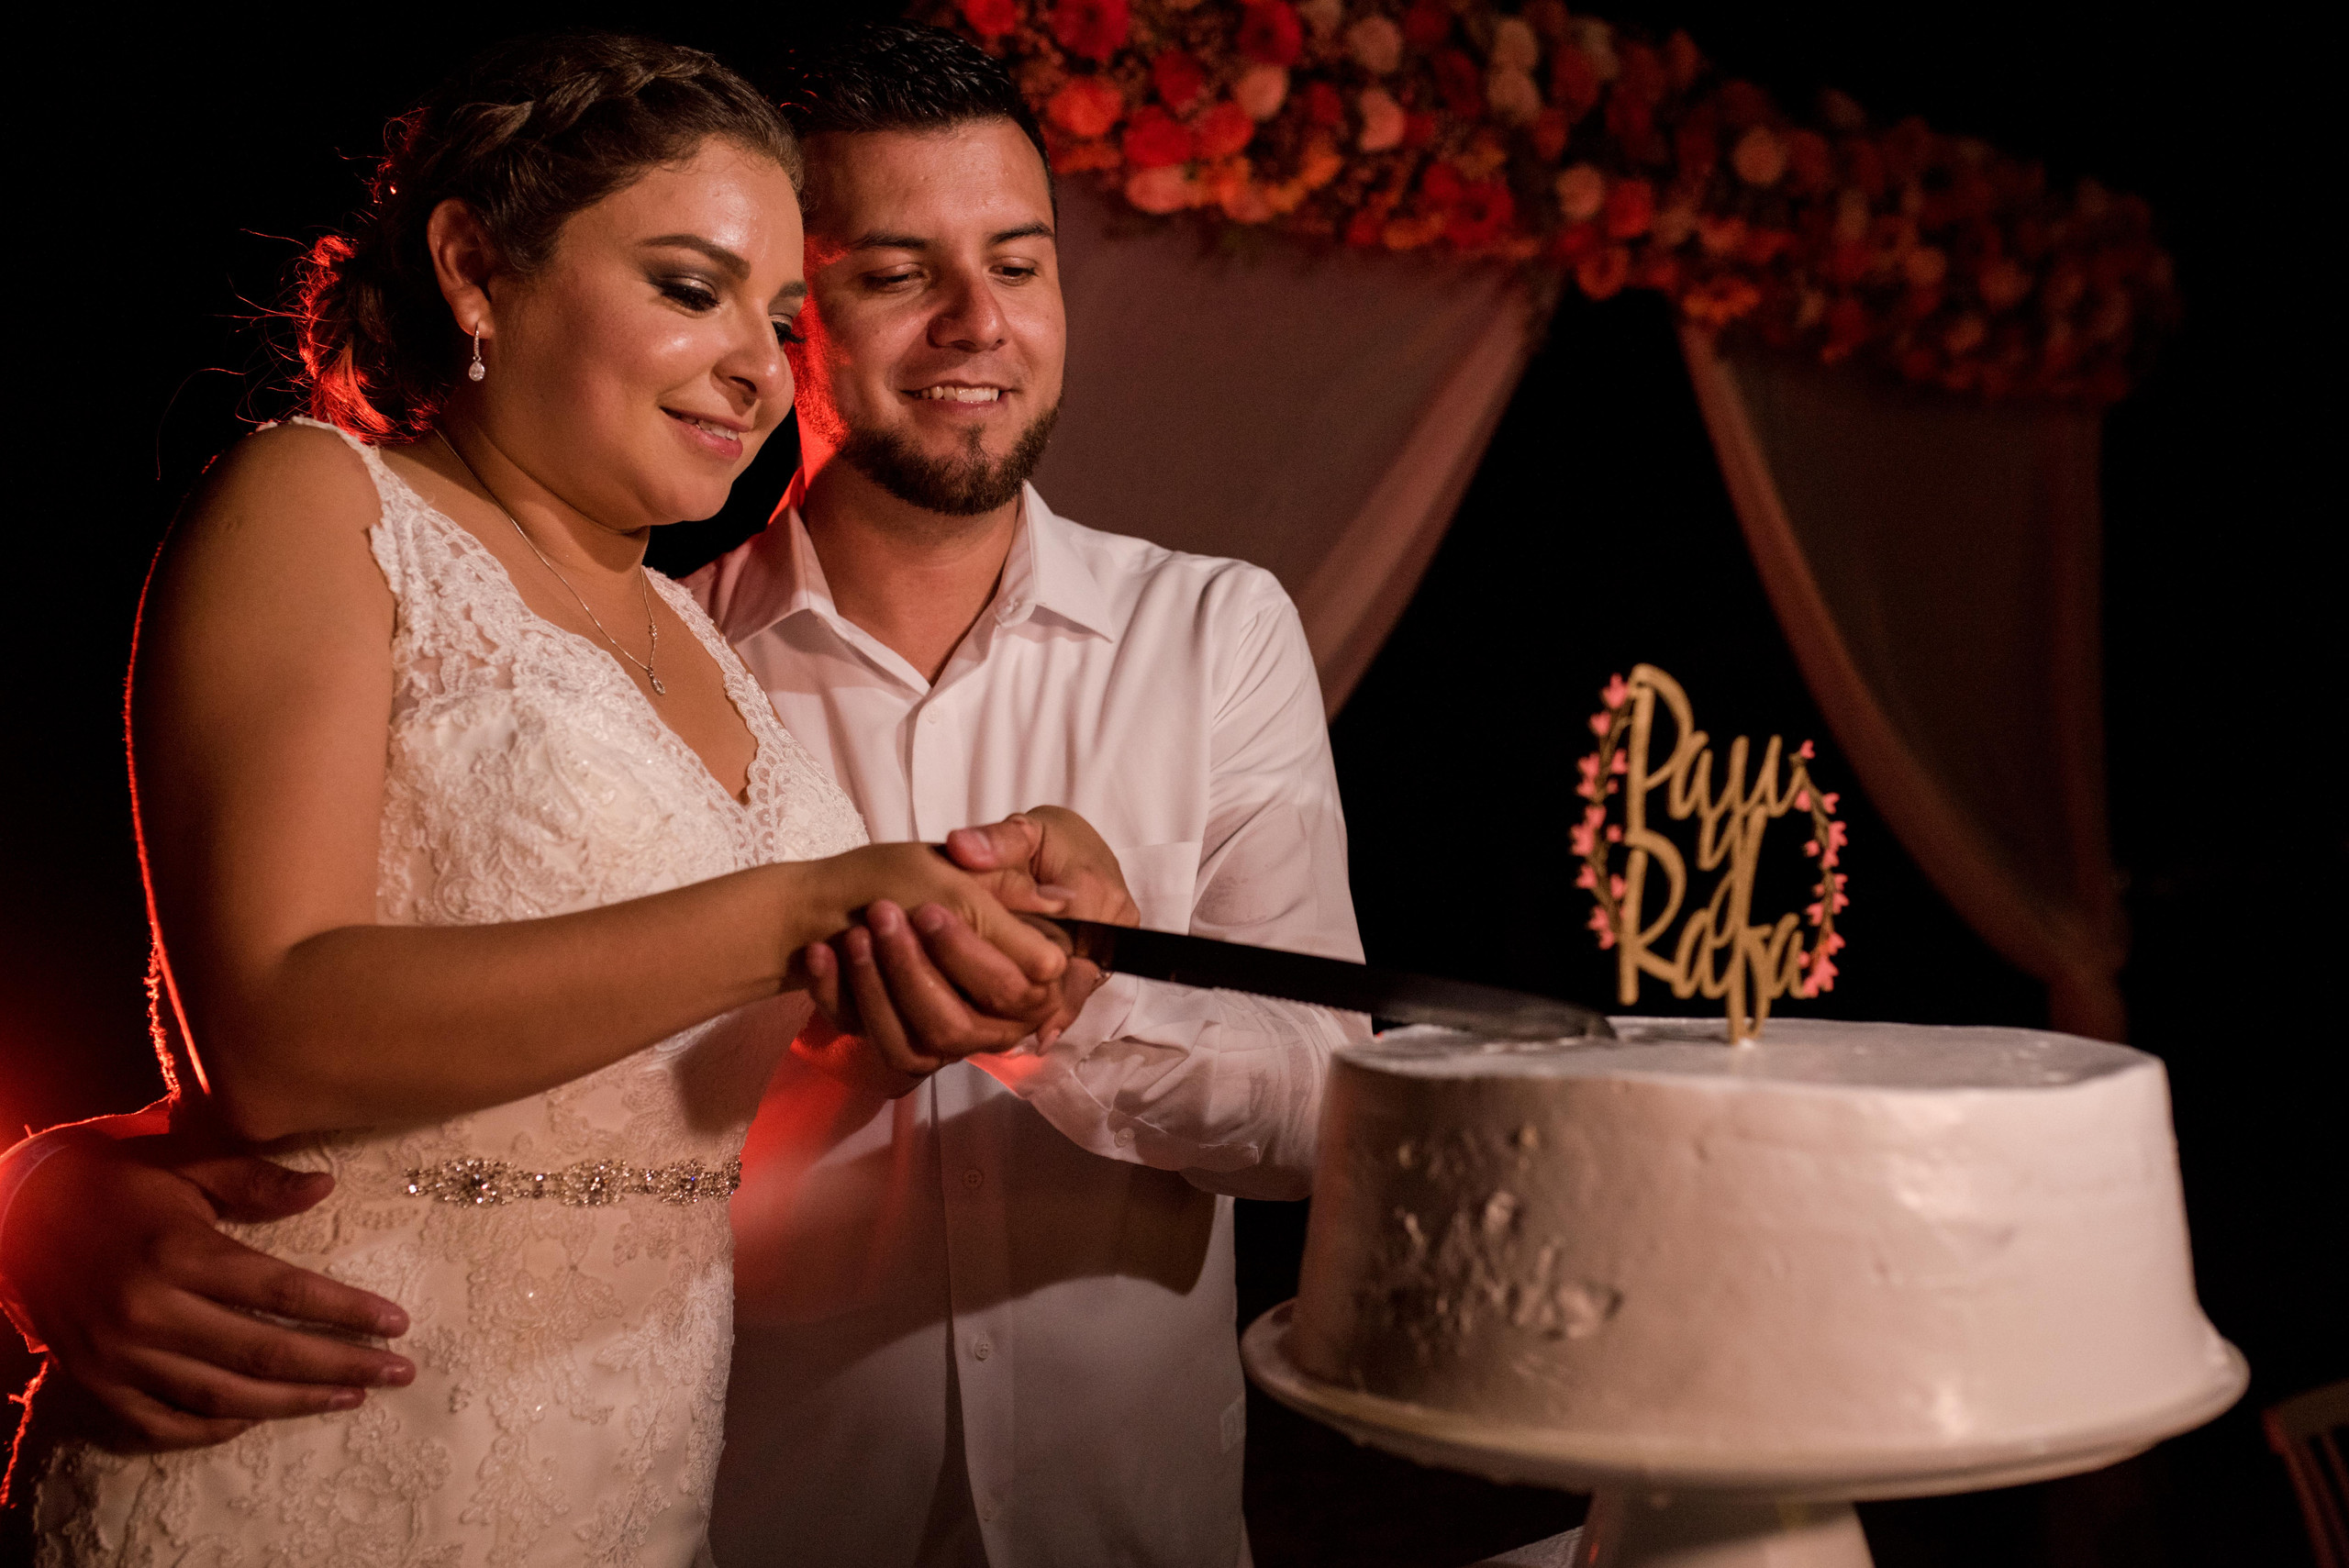 wedding+cake+cutting+hote+omni+cancun+bride+groom+photo